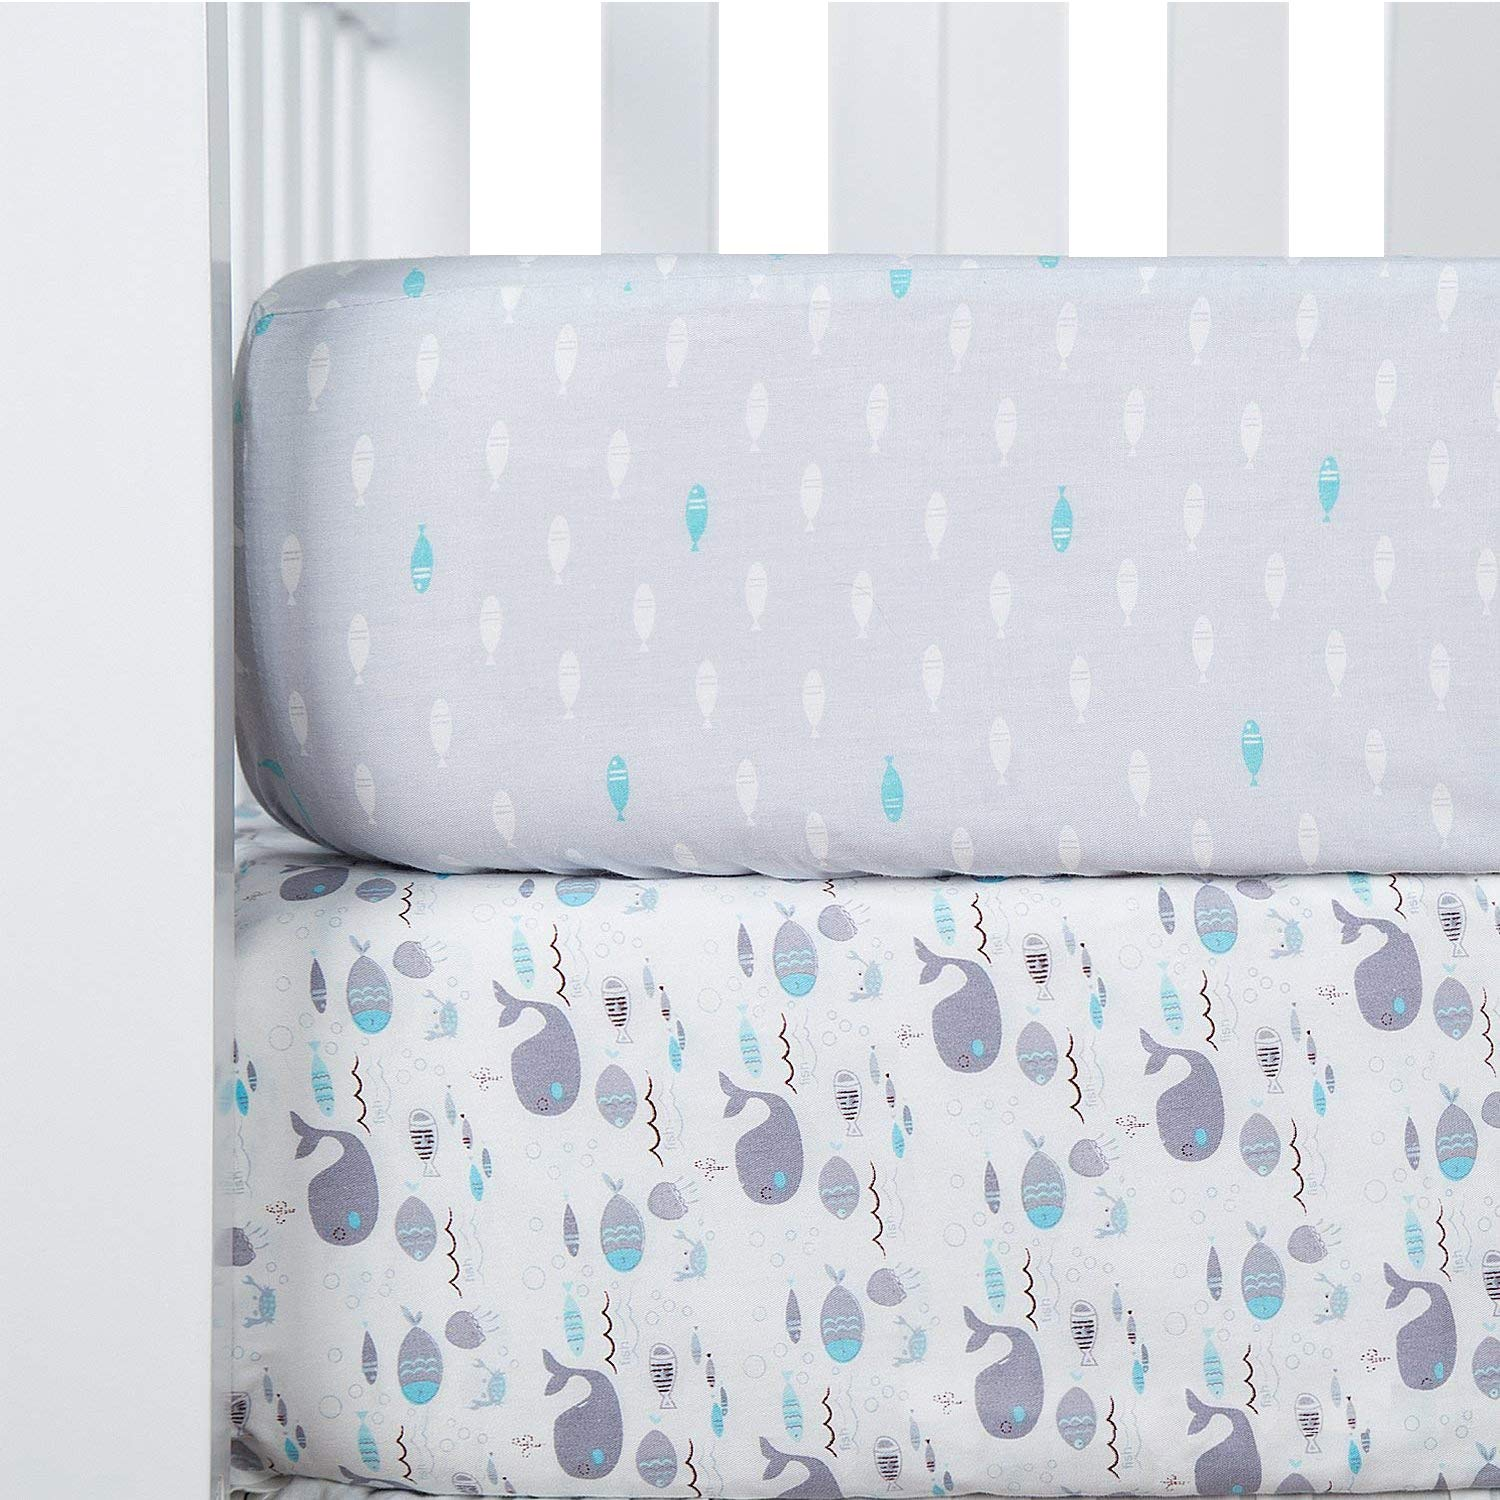 TILLYOU Printed Whale Crib Sheets Set, 100% Egyptian Cotton Toddler Sheets for Baby Boys Girls, Soft Breathable Hypoallergenic, 28''x52'', 2 Pack Sea World & Ocean Fish by TILLYOU